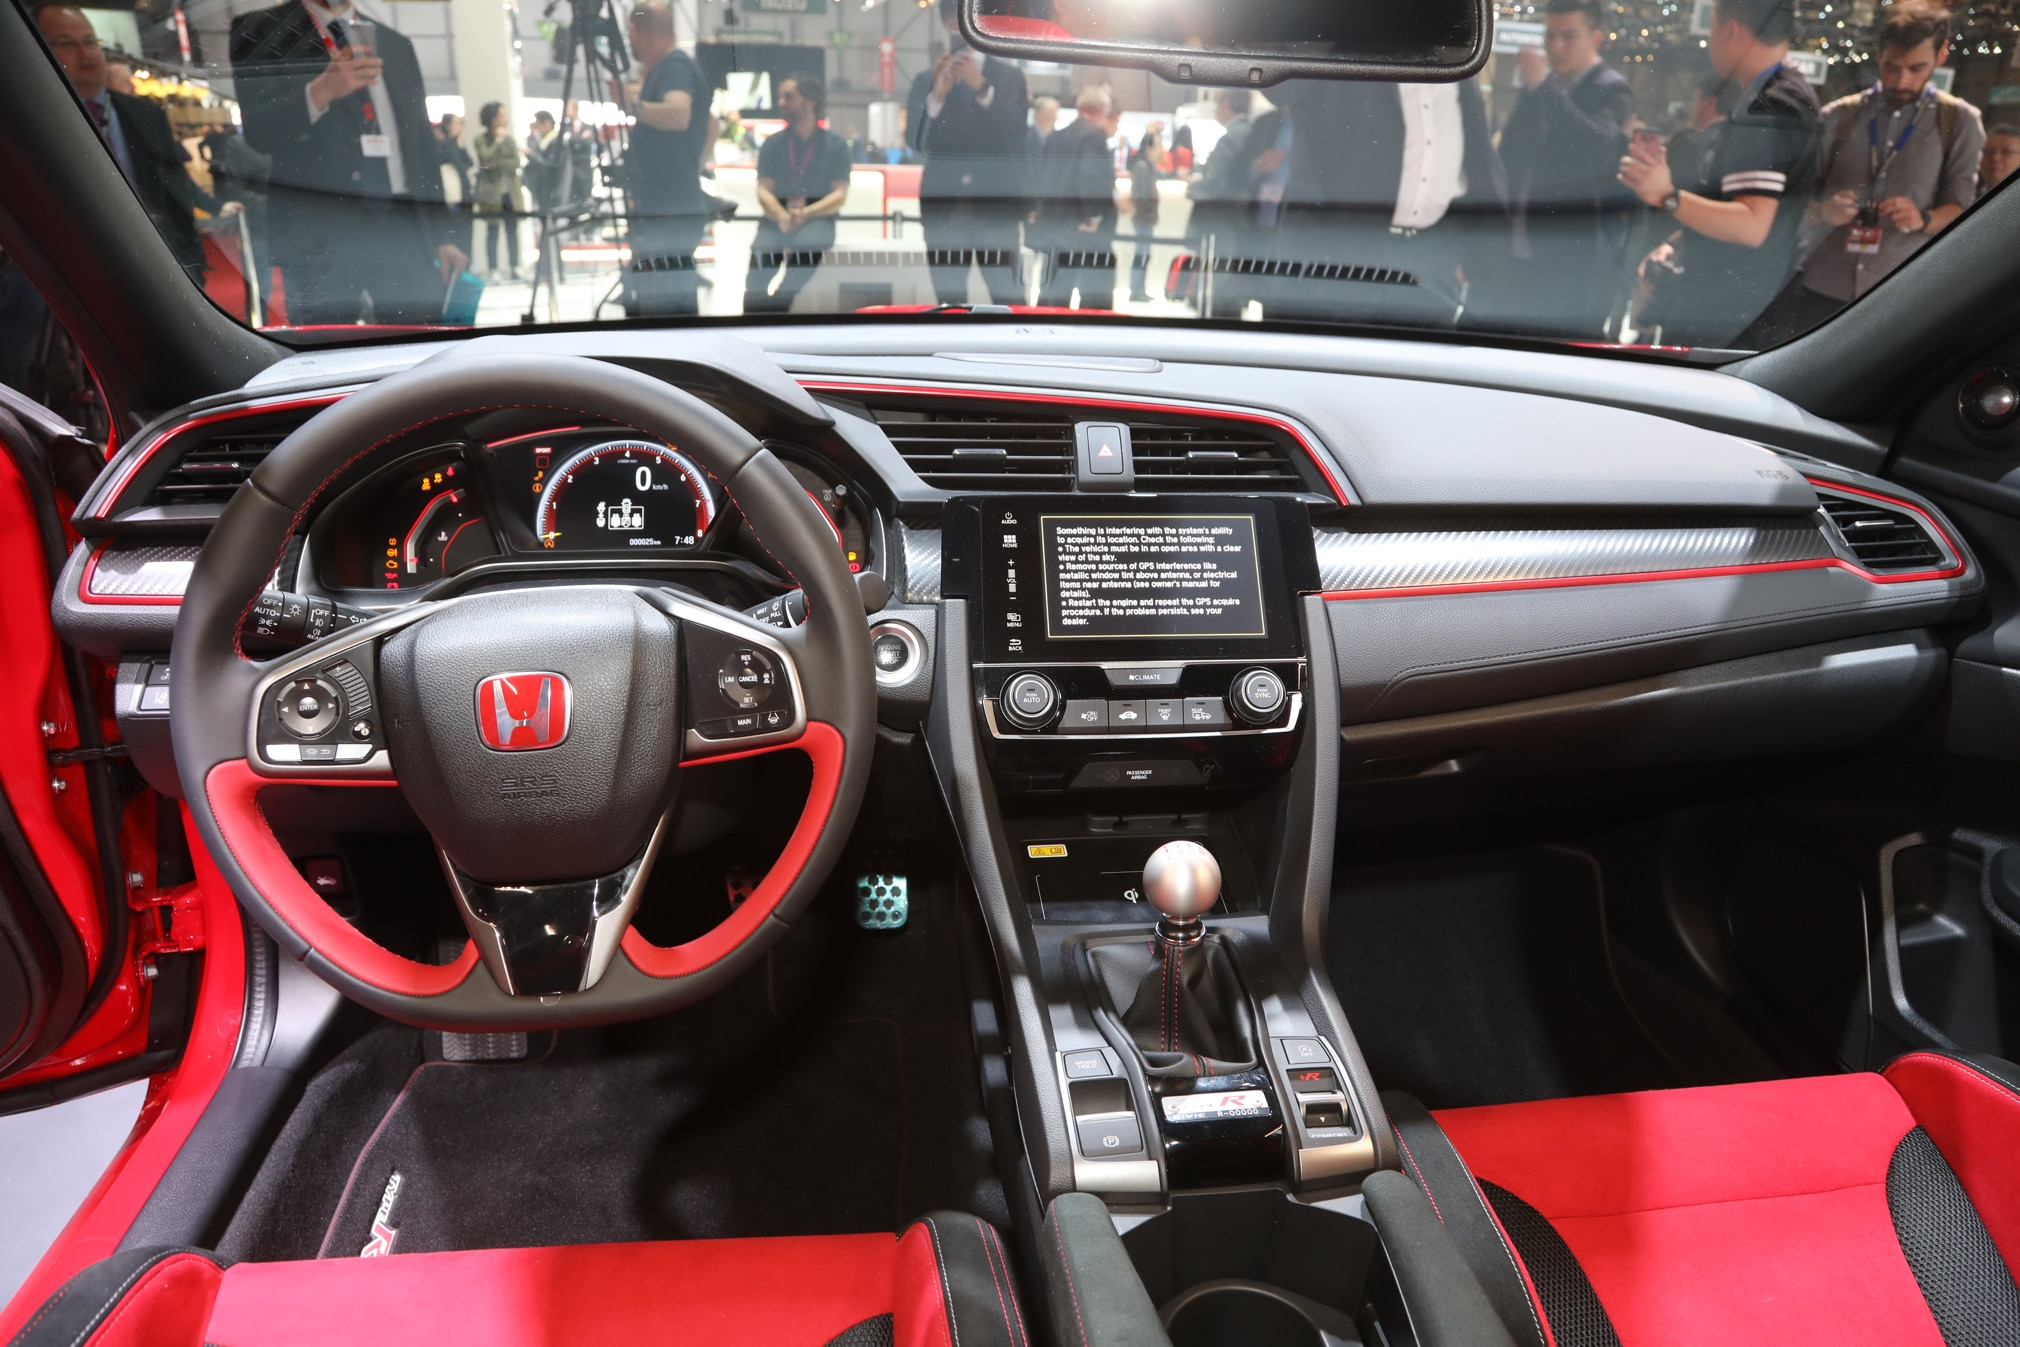 2017 honda civic type r interior 02 1 motor trend en espa ol for Honda civic 9 interieur